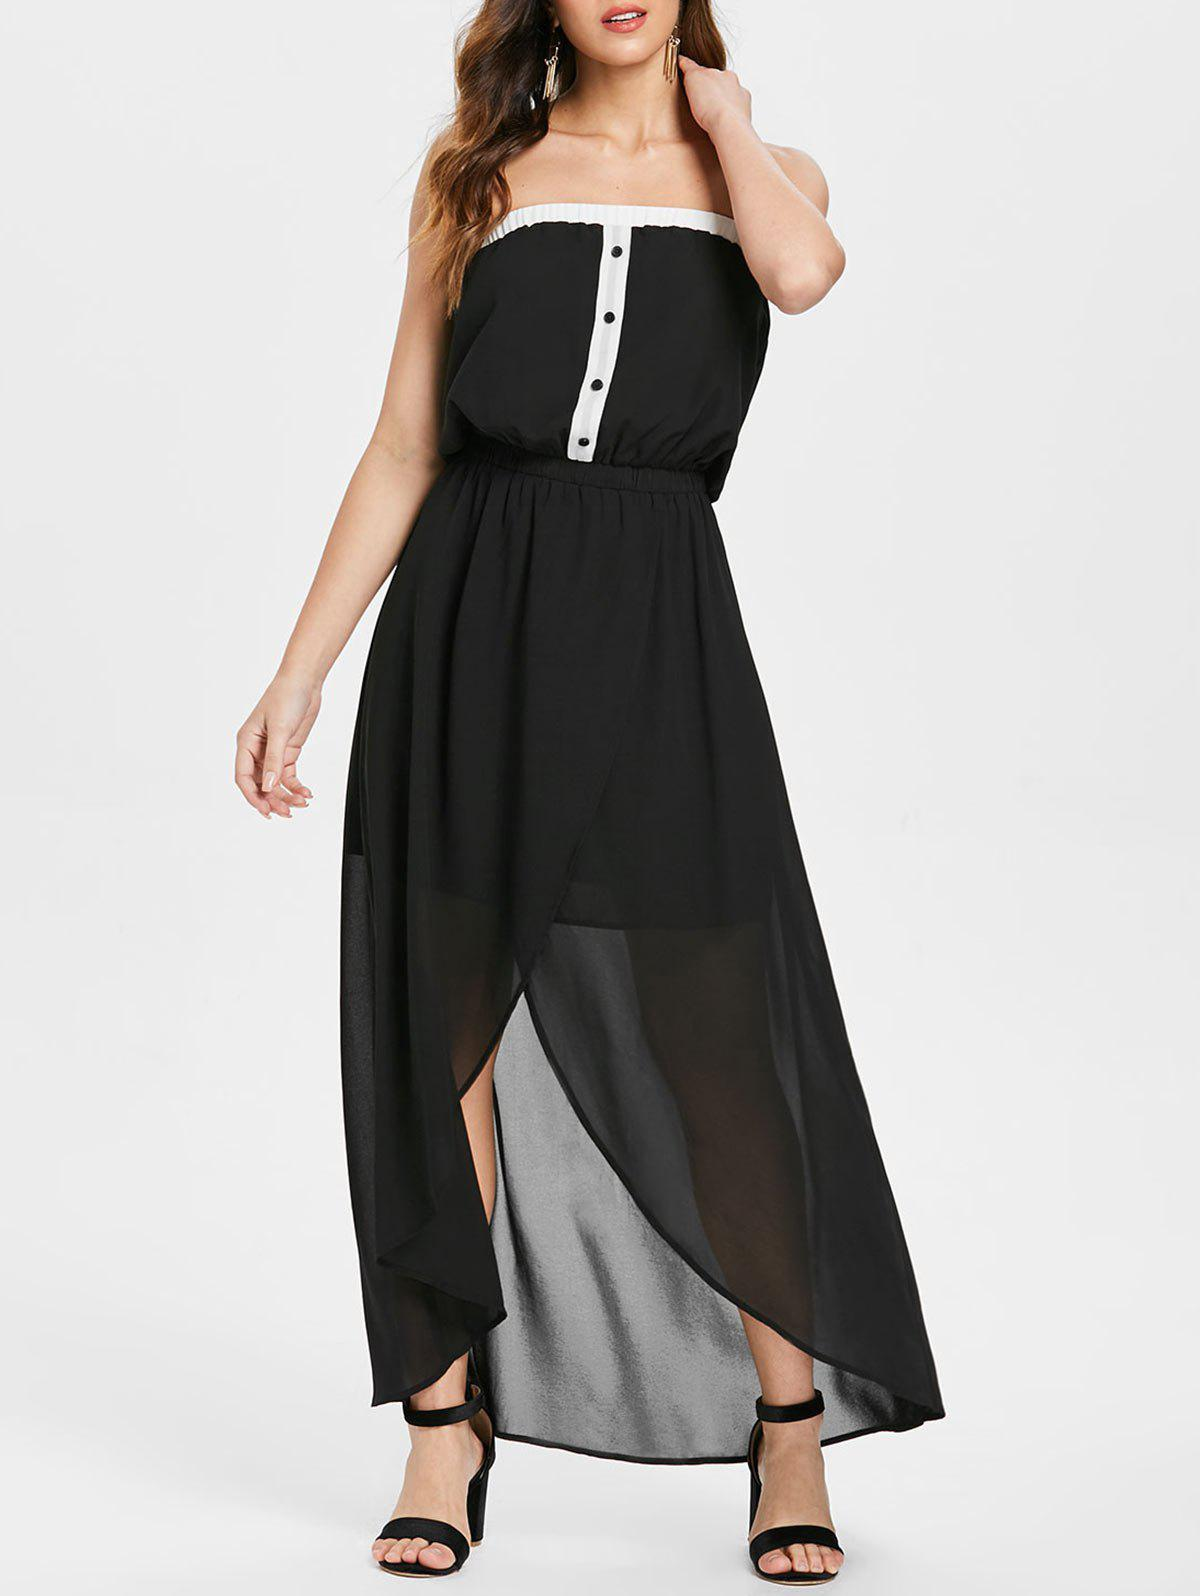 Midi High Low Chiffon Tube Dress - BLACK L